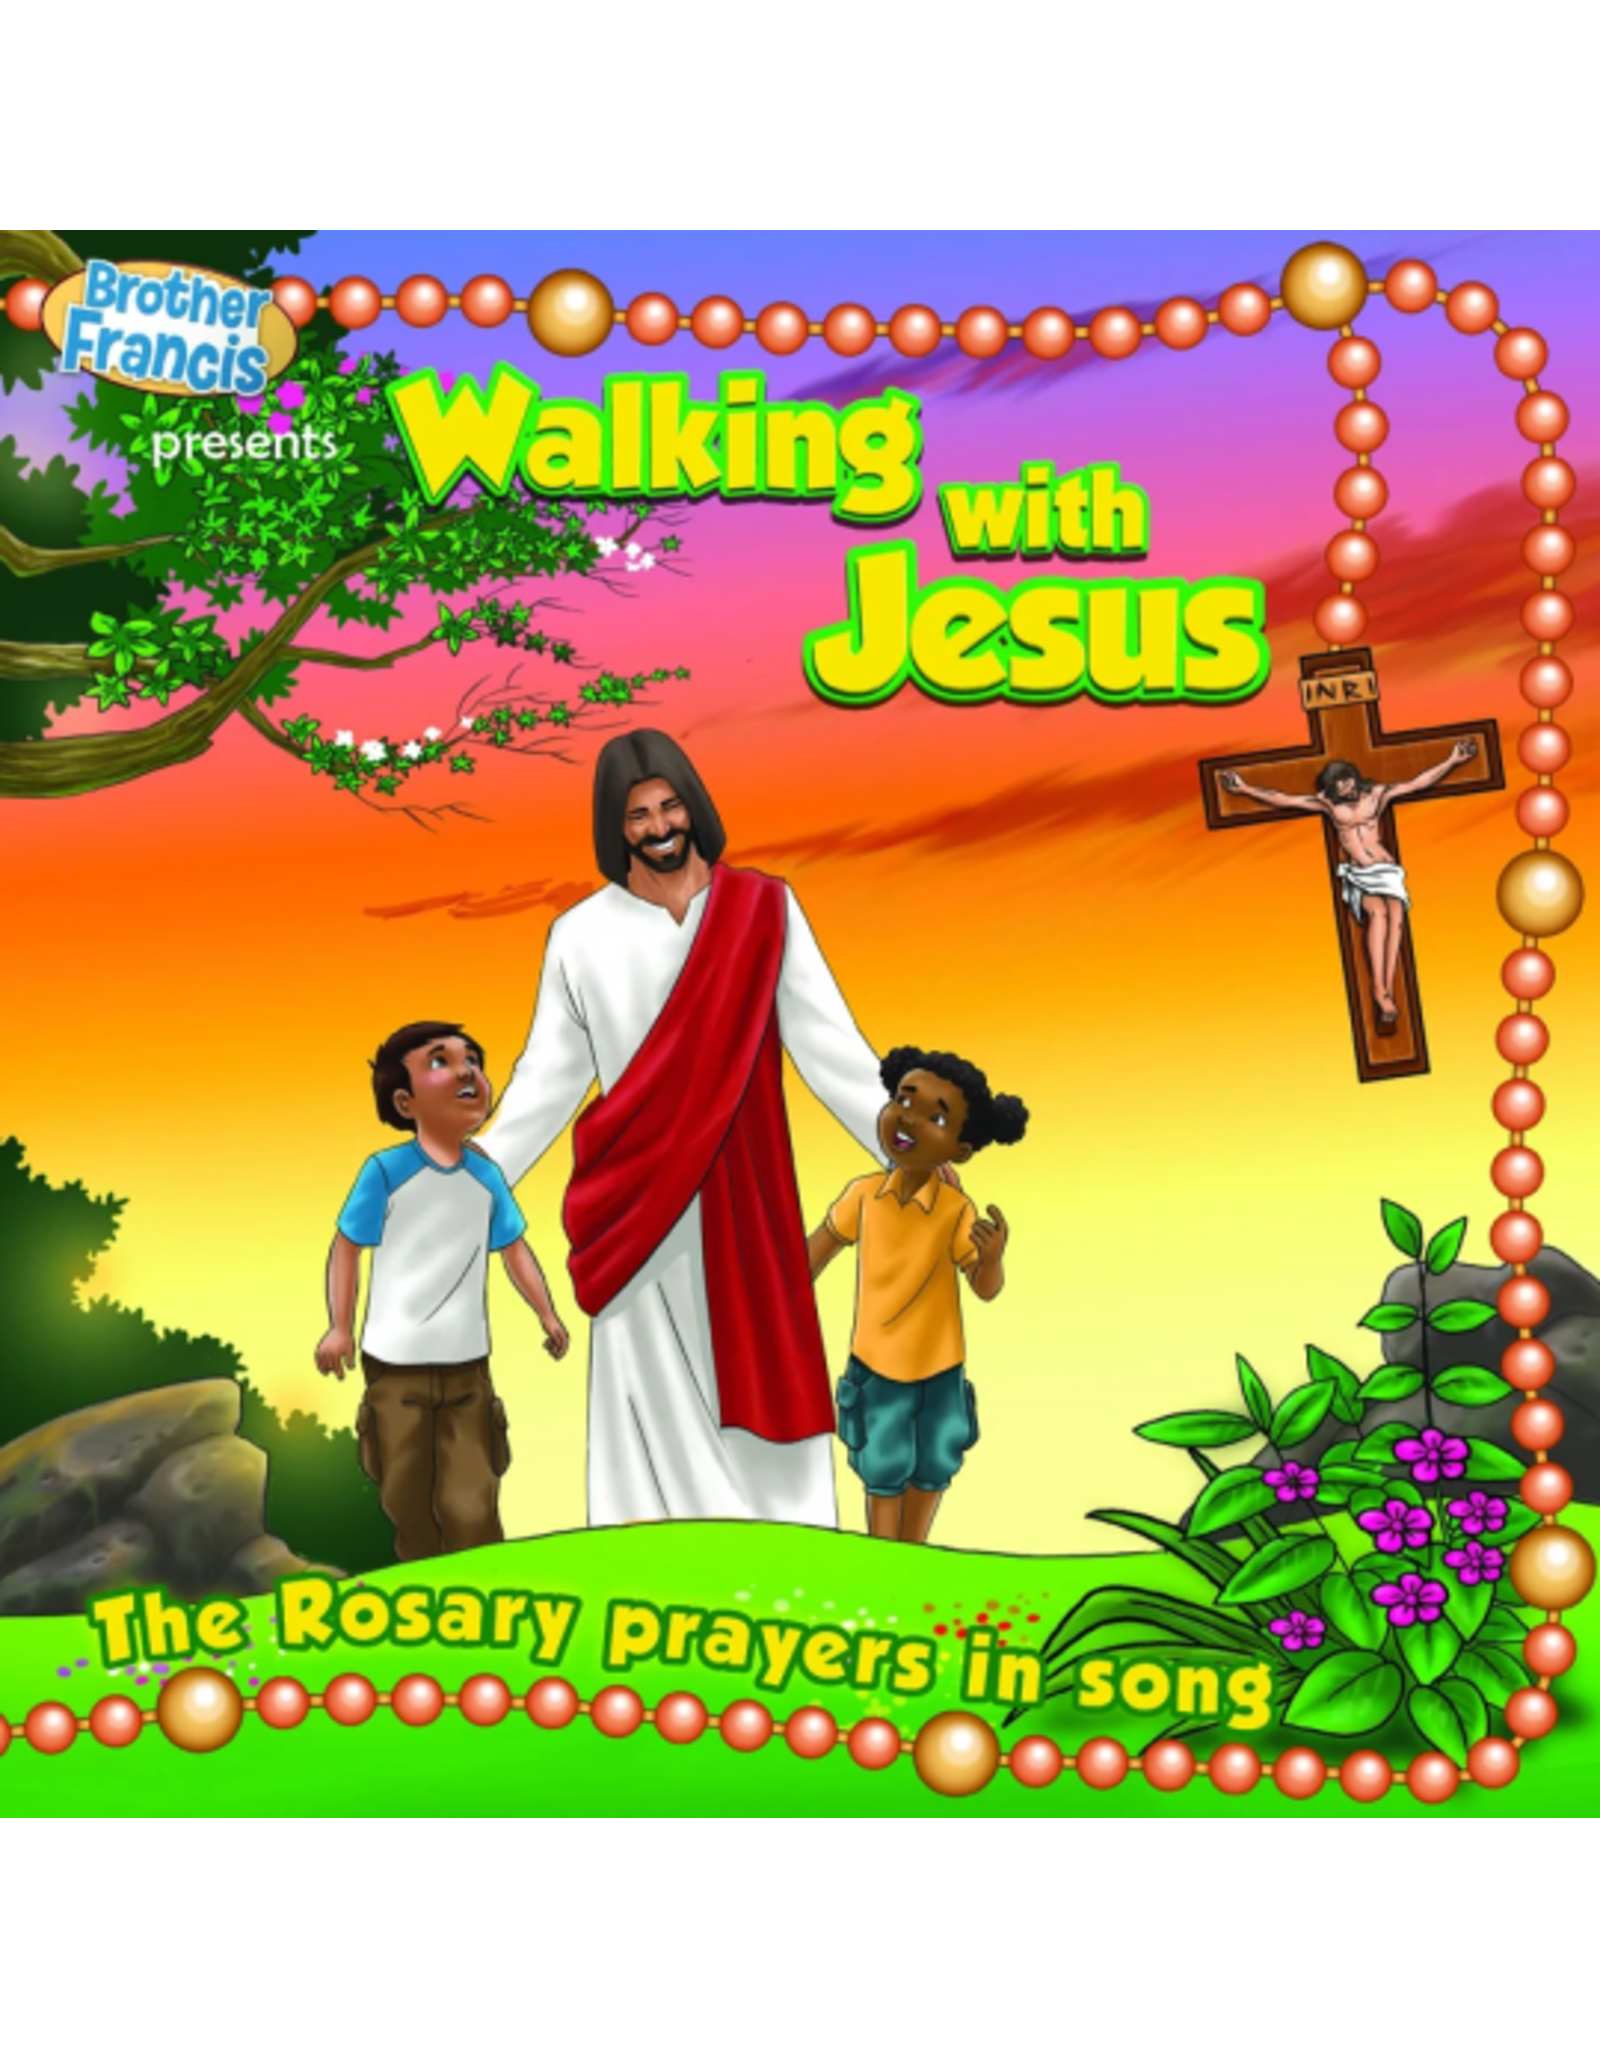 Walking with Jesus: The Rosary Prayers in Song CD